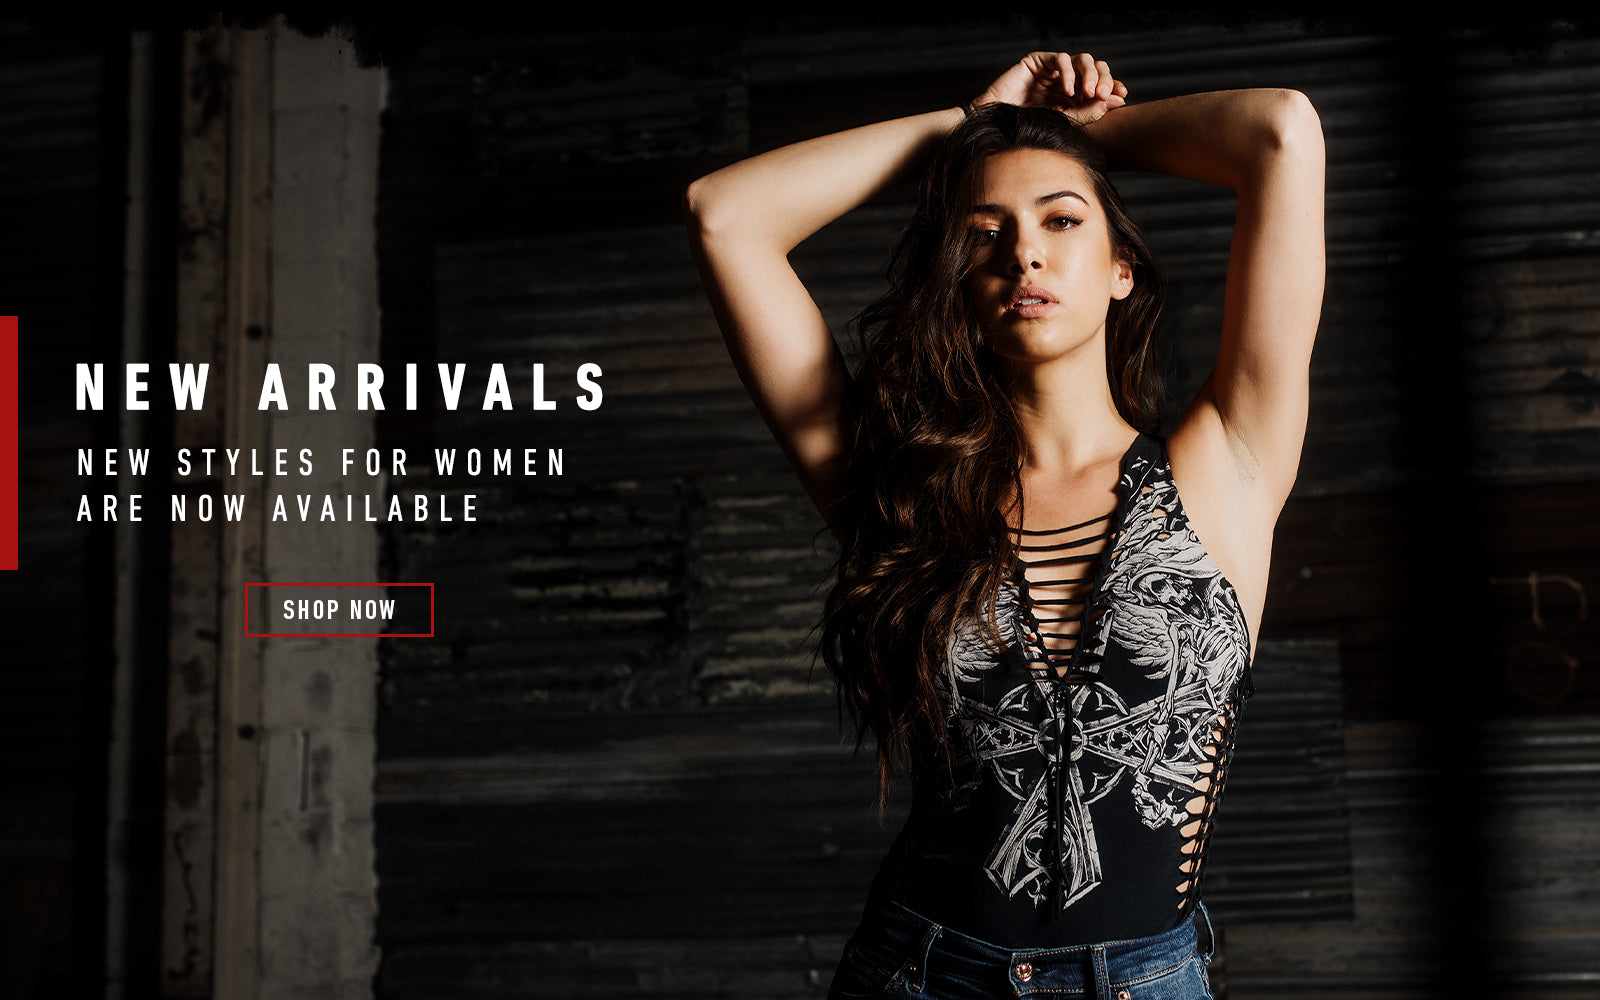 new arrivals new styles for women are now available